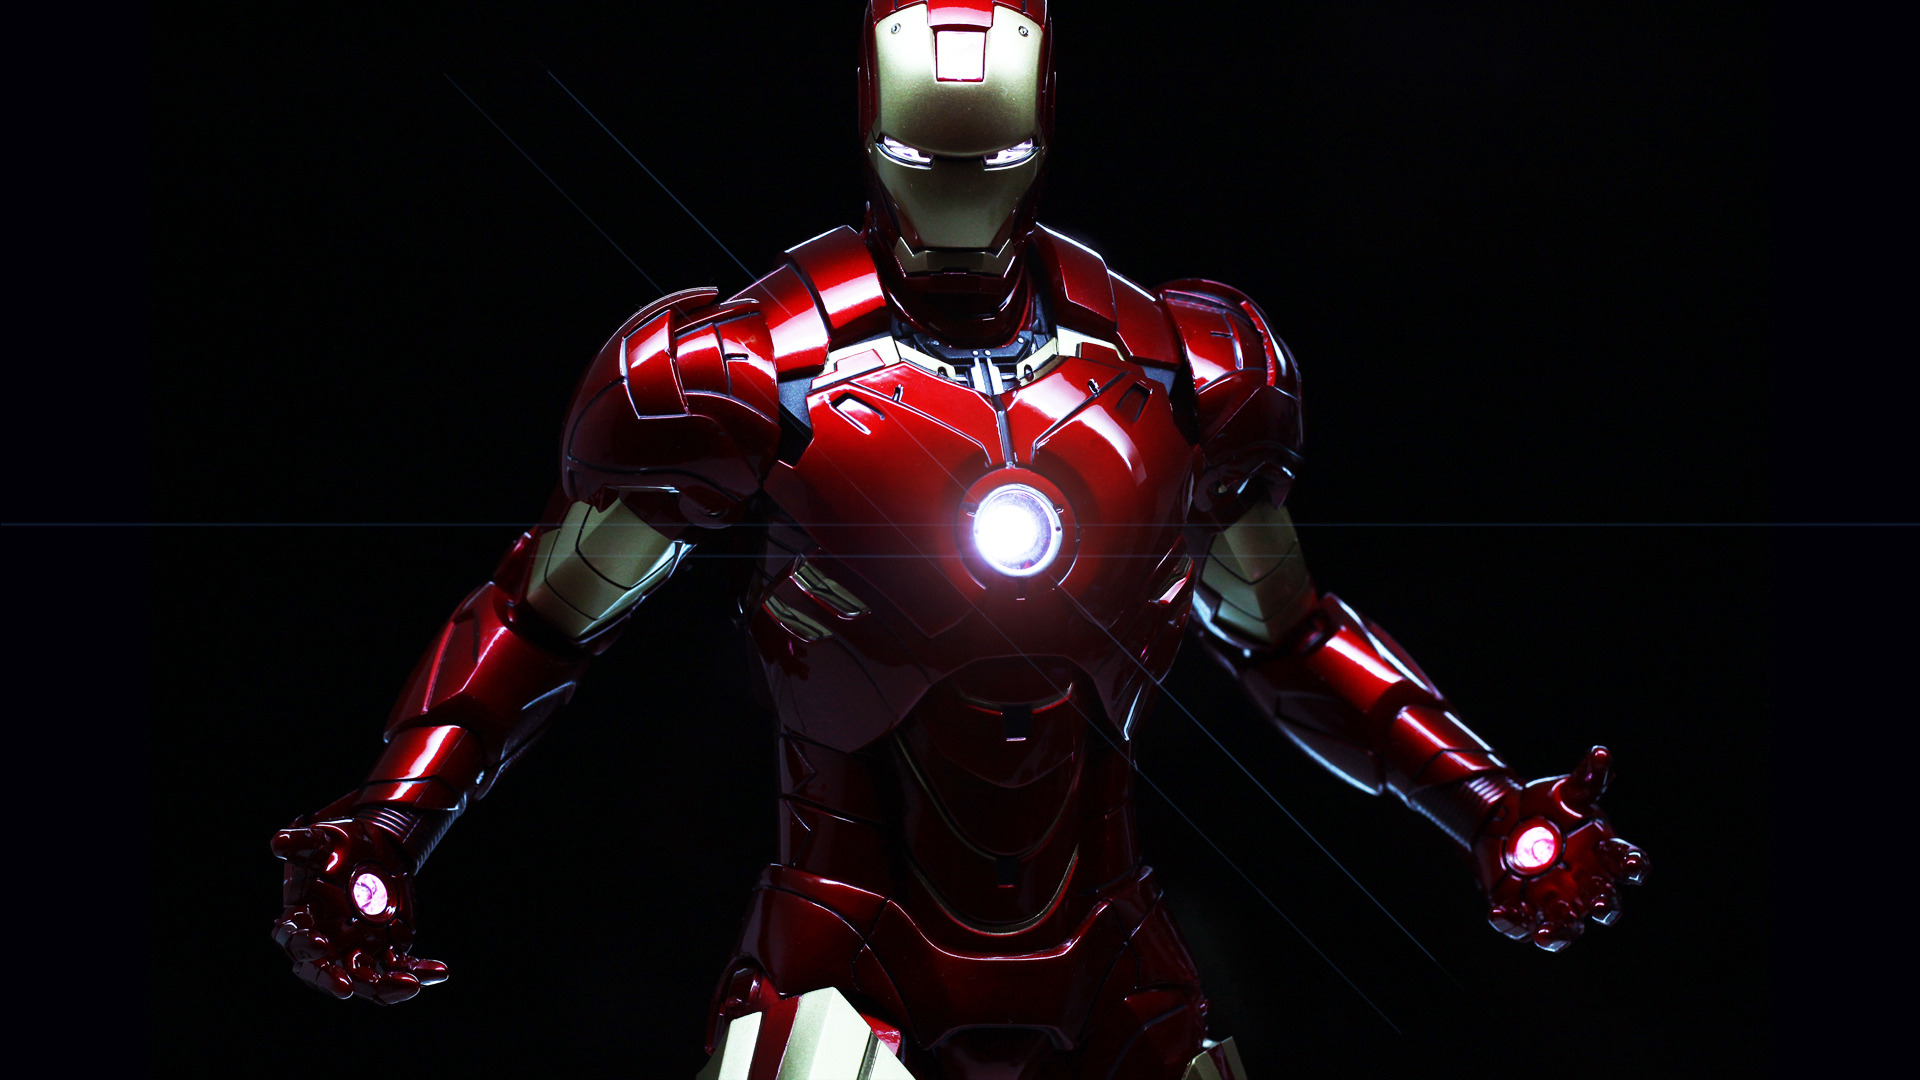 Iron Man Hero 72.65 Kb